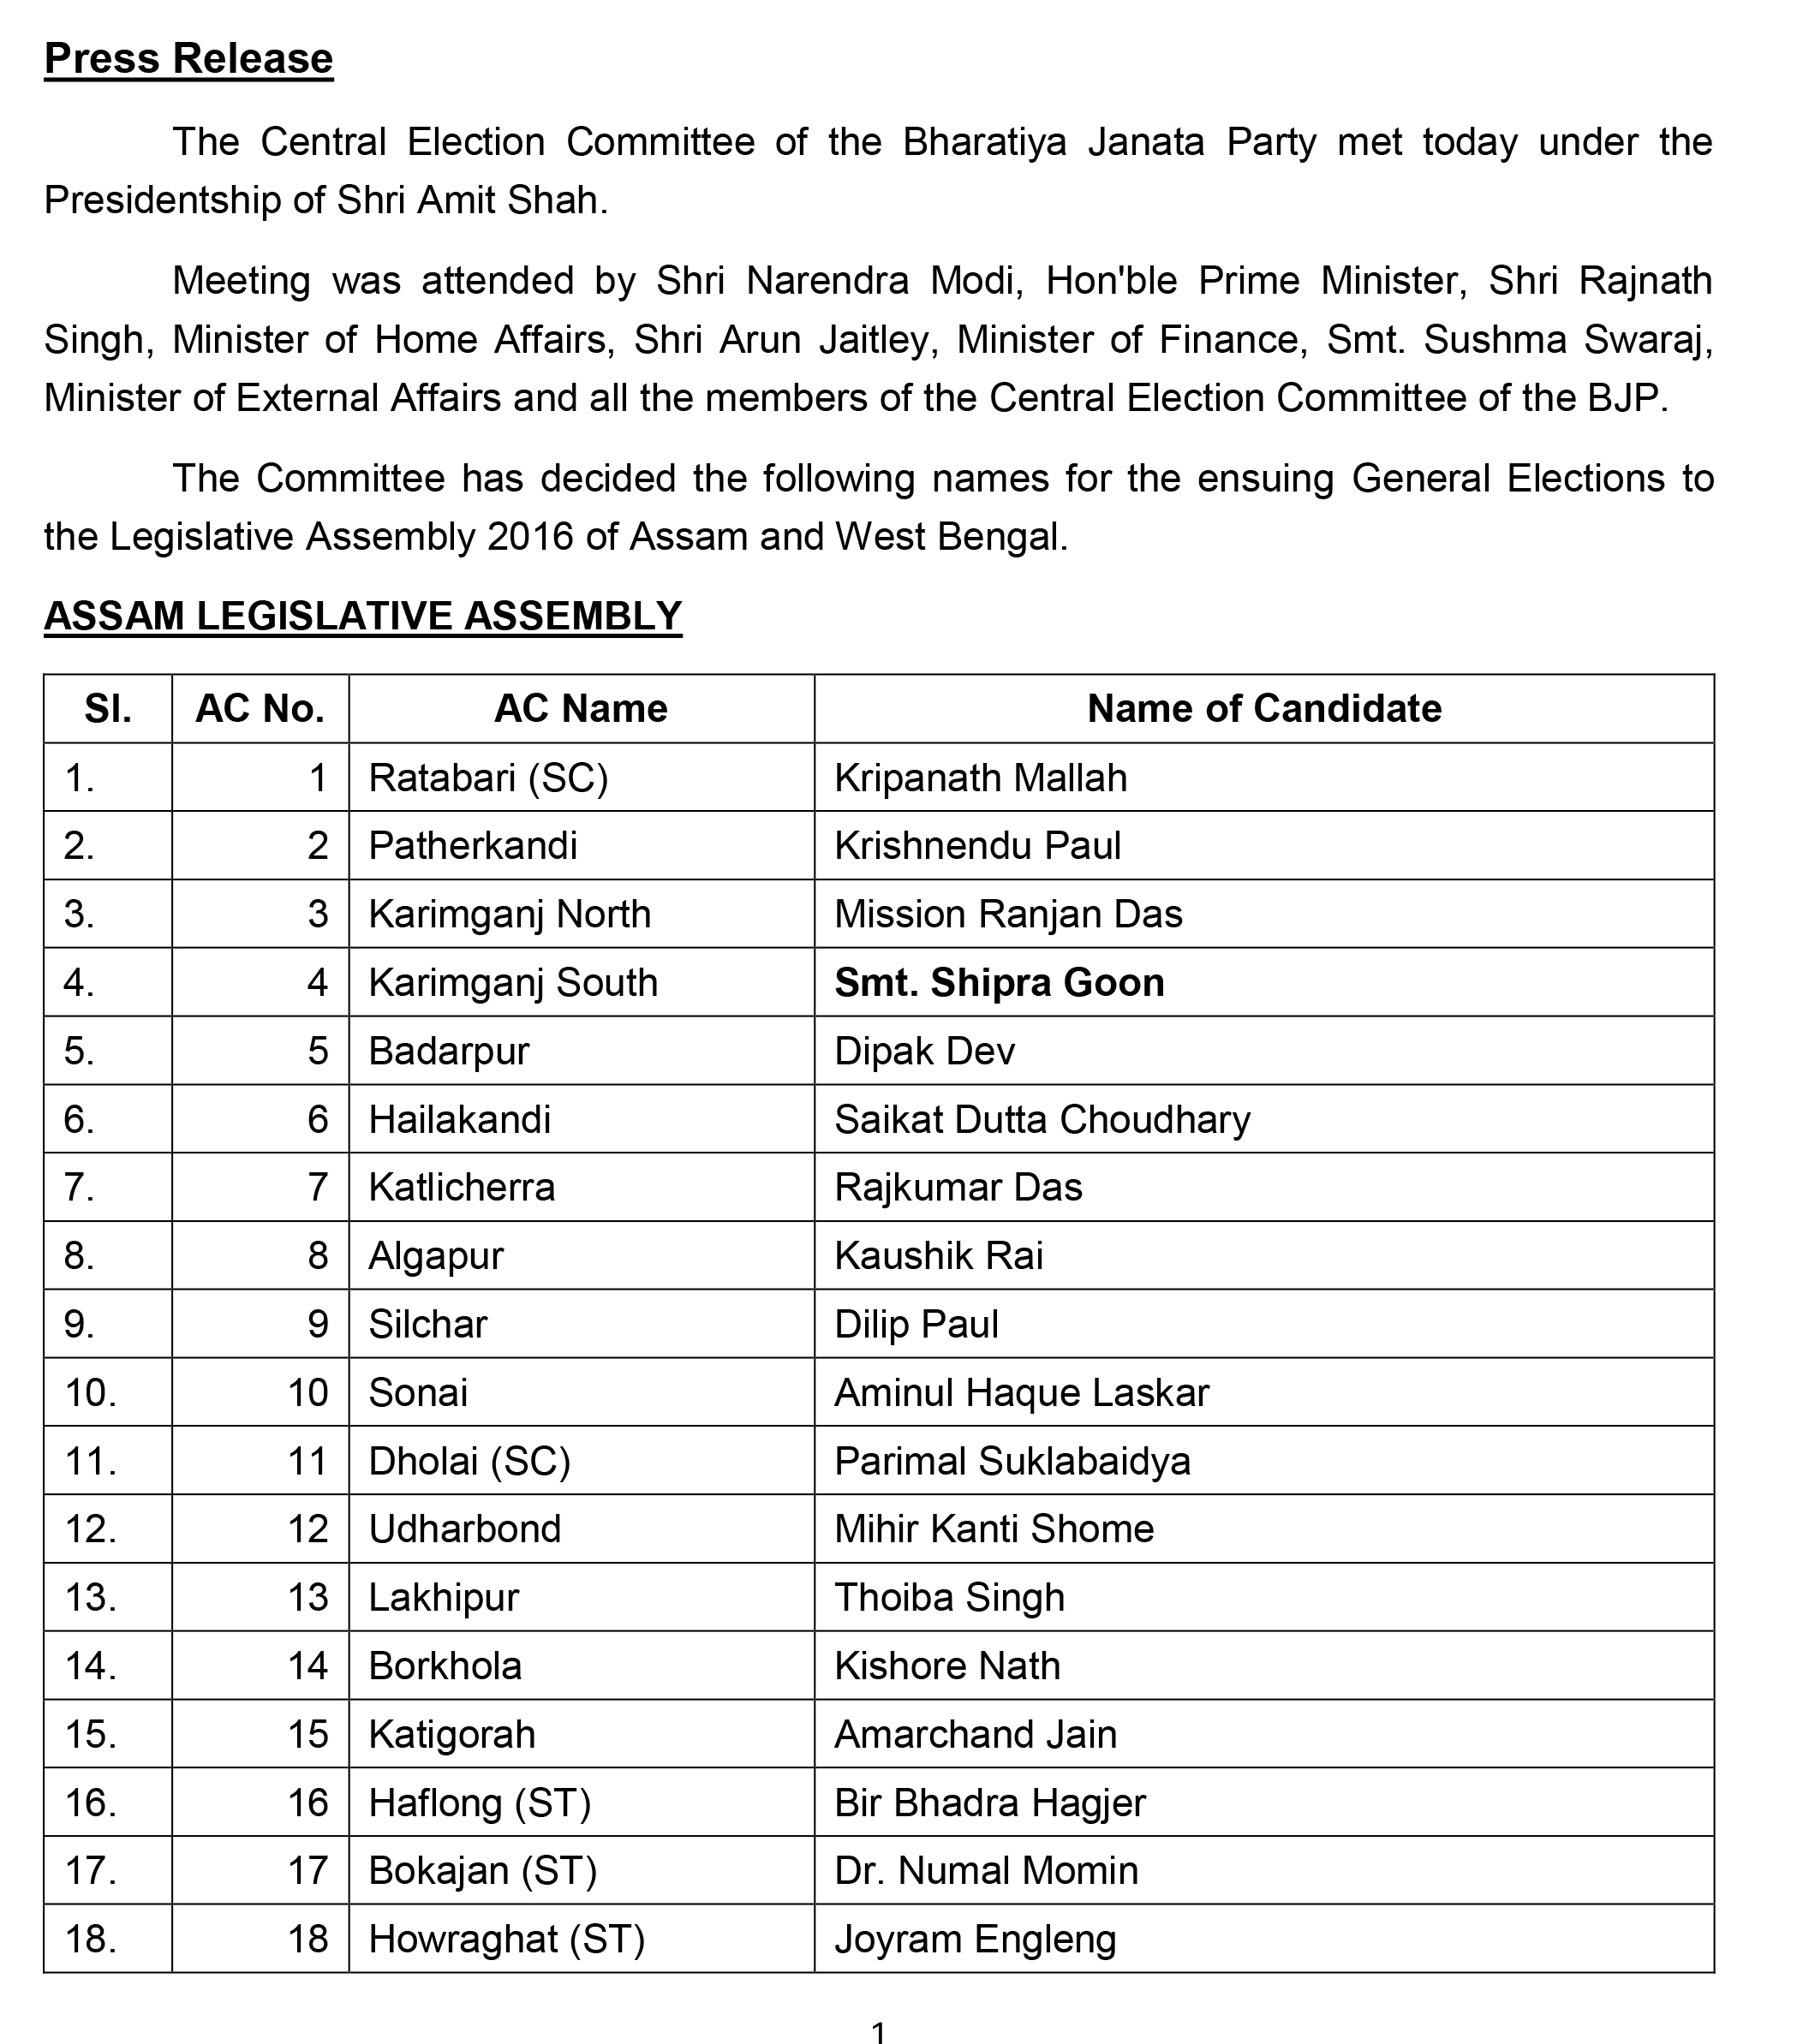 list_of_candidate_for_assam_west_bengal_assembly_election_2016_1_09.03.2016